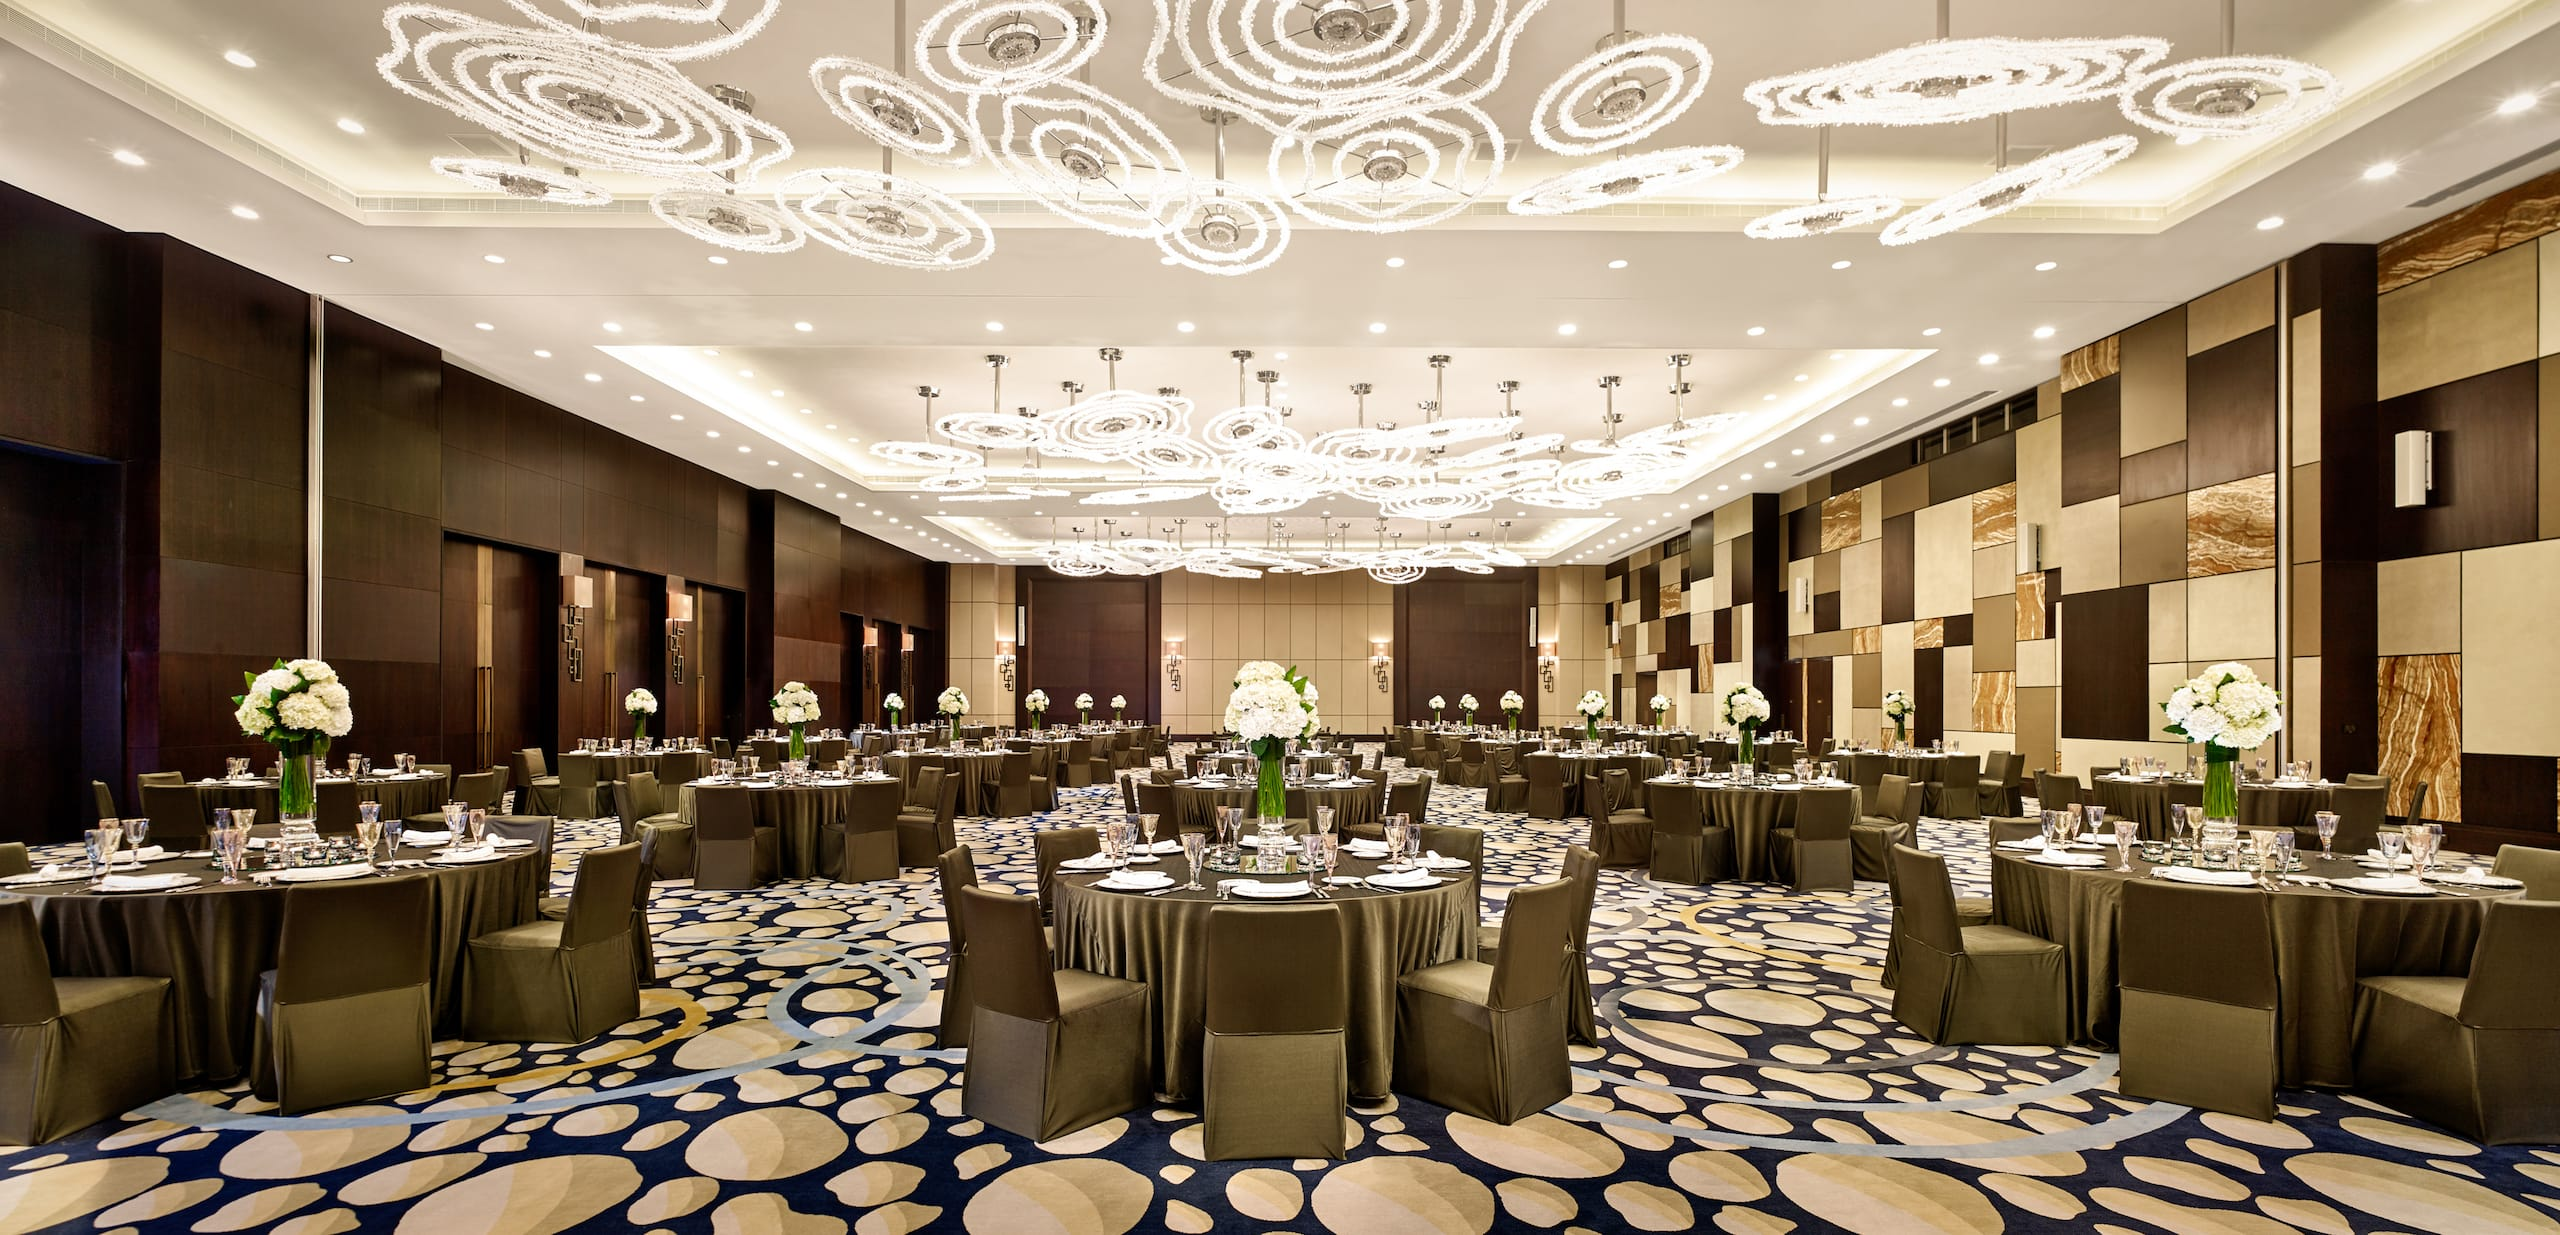 Meeting Events And Wedding Banquets In Abu Dhabi